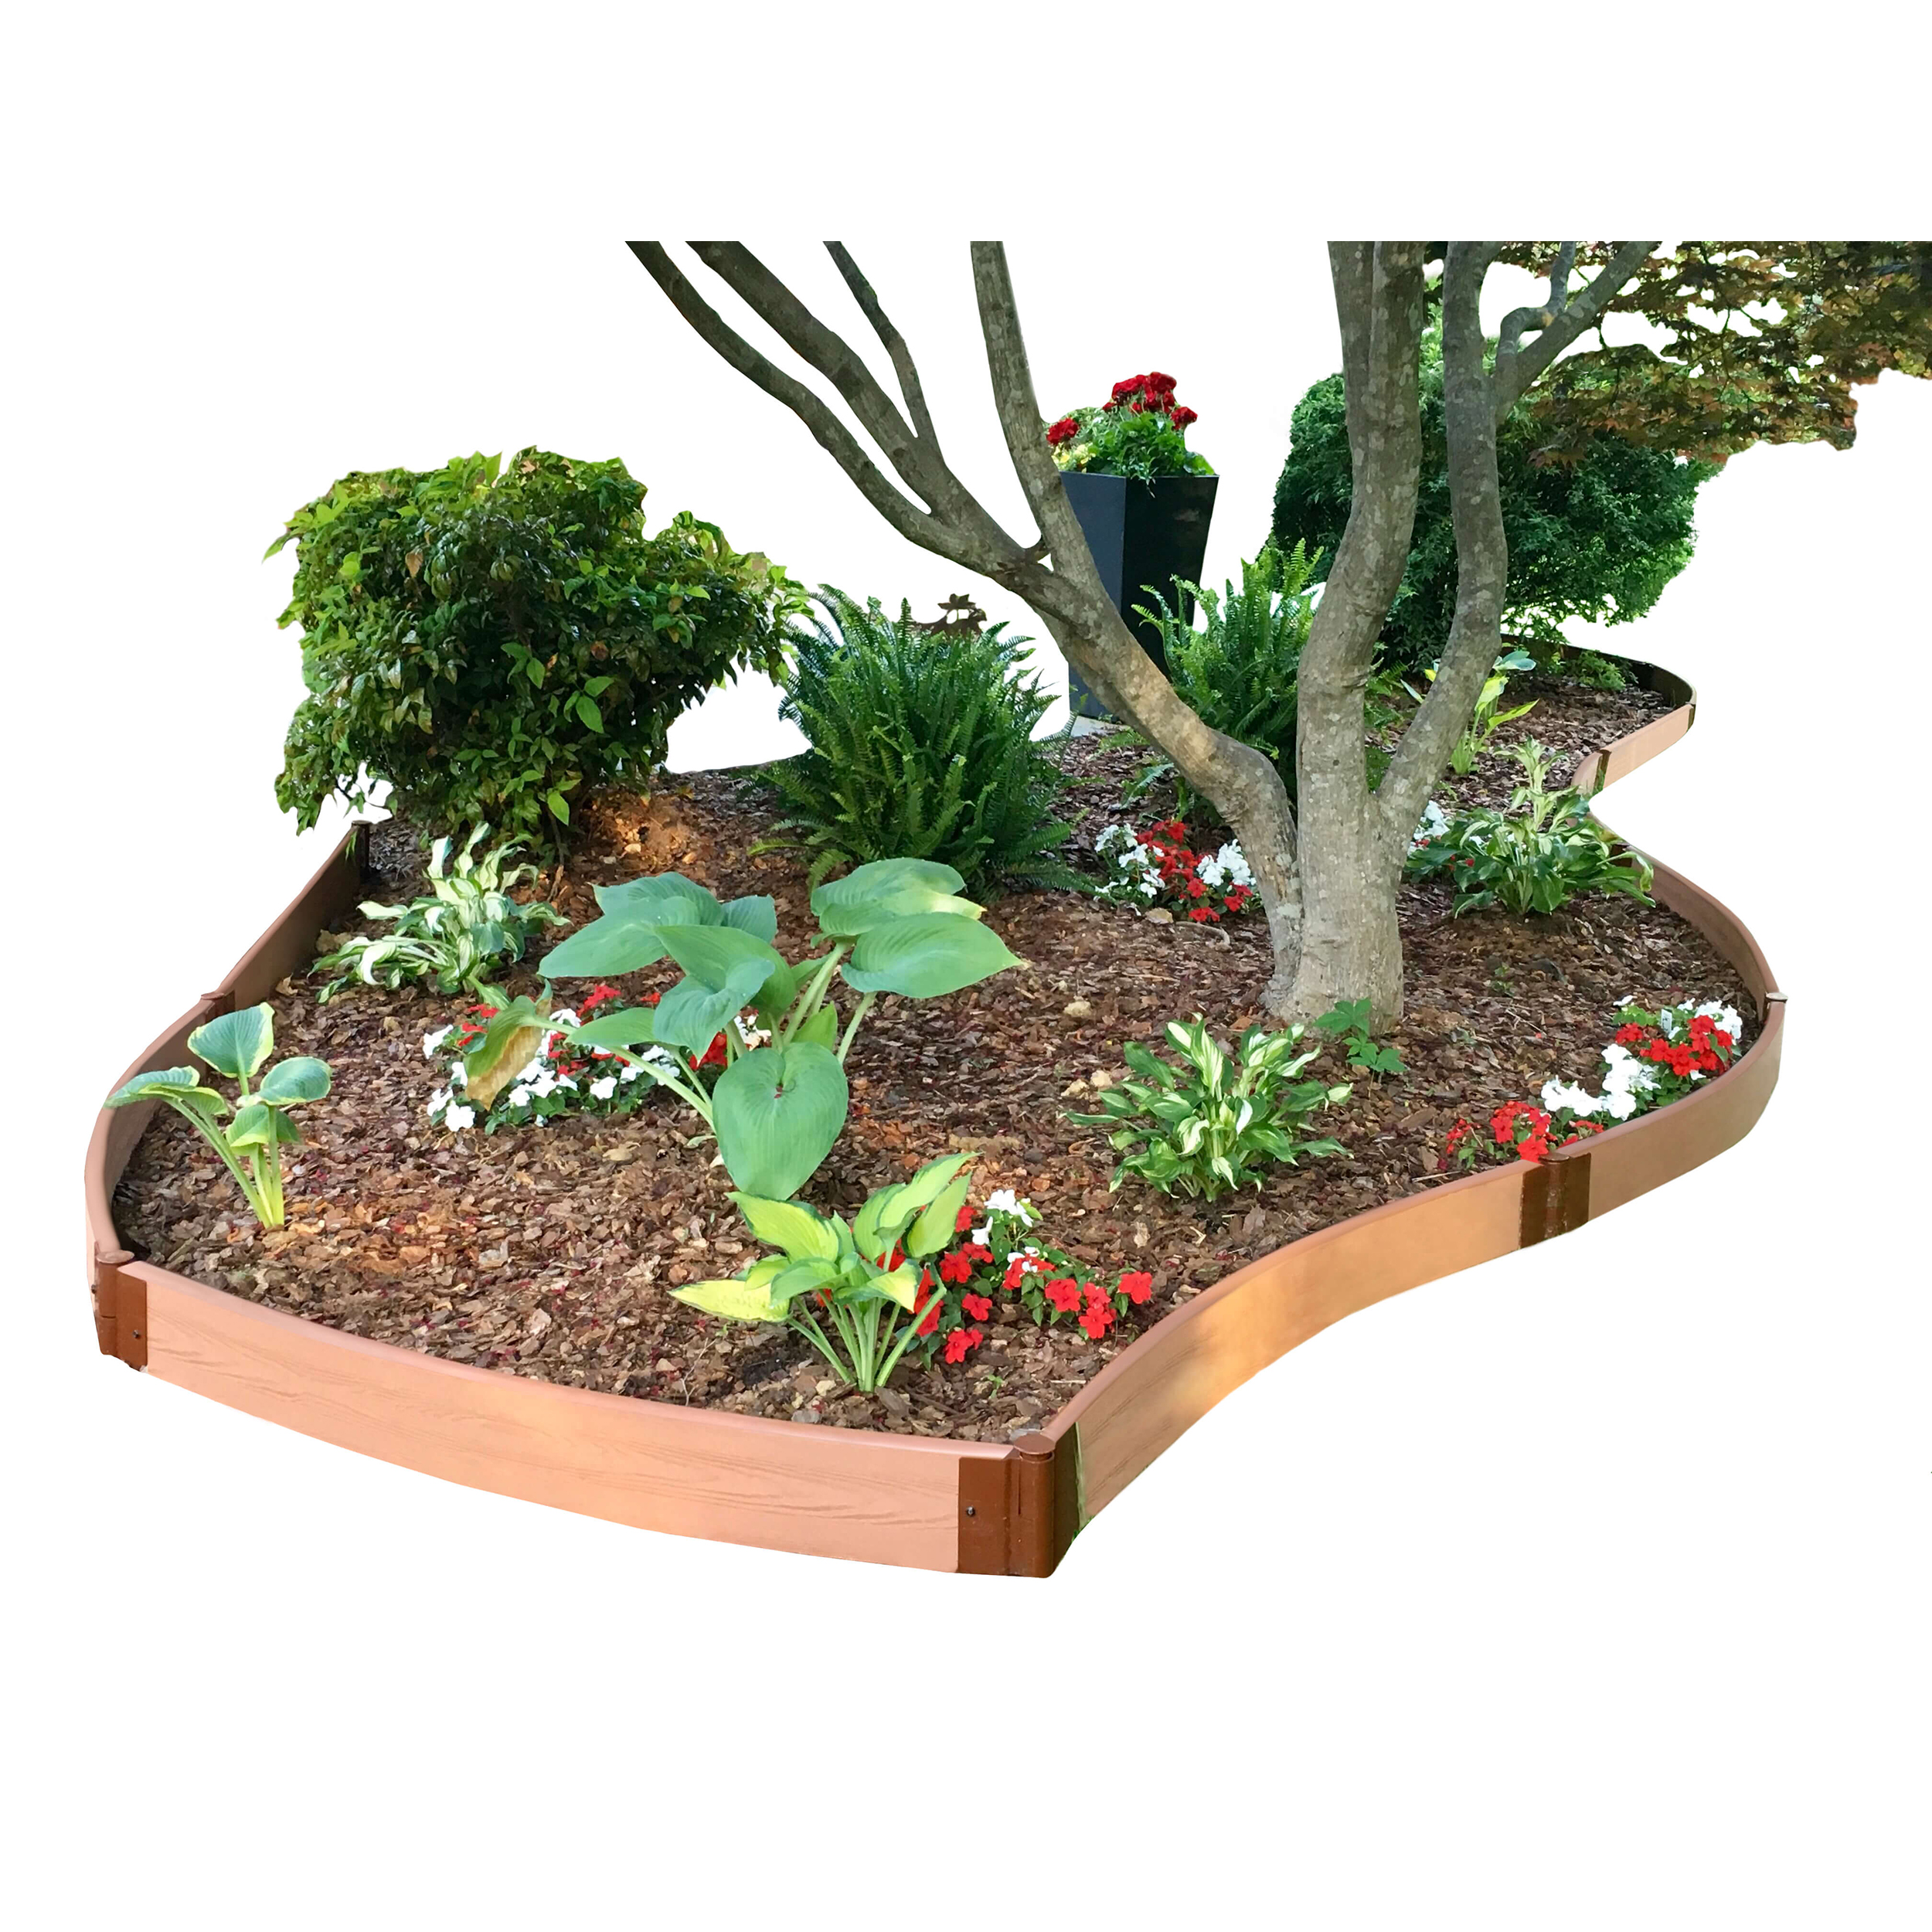 Classic Sienna Curved Landscape Edging Kit 16? ? 2? profile